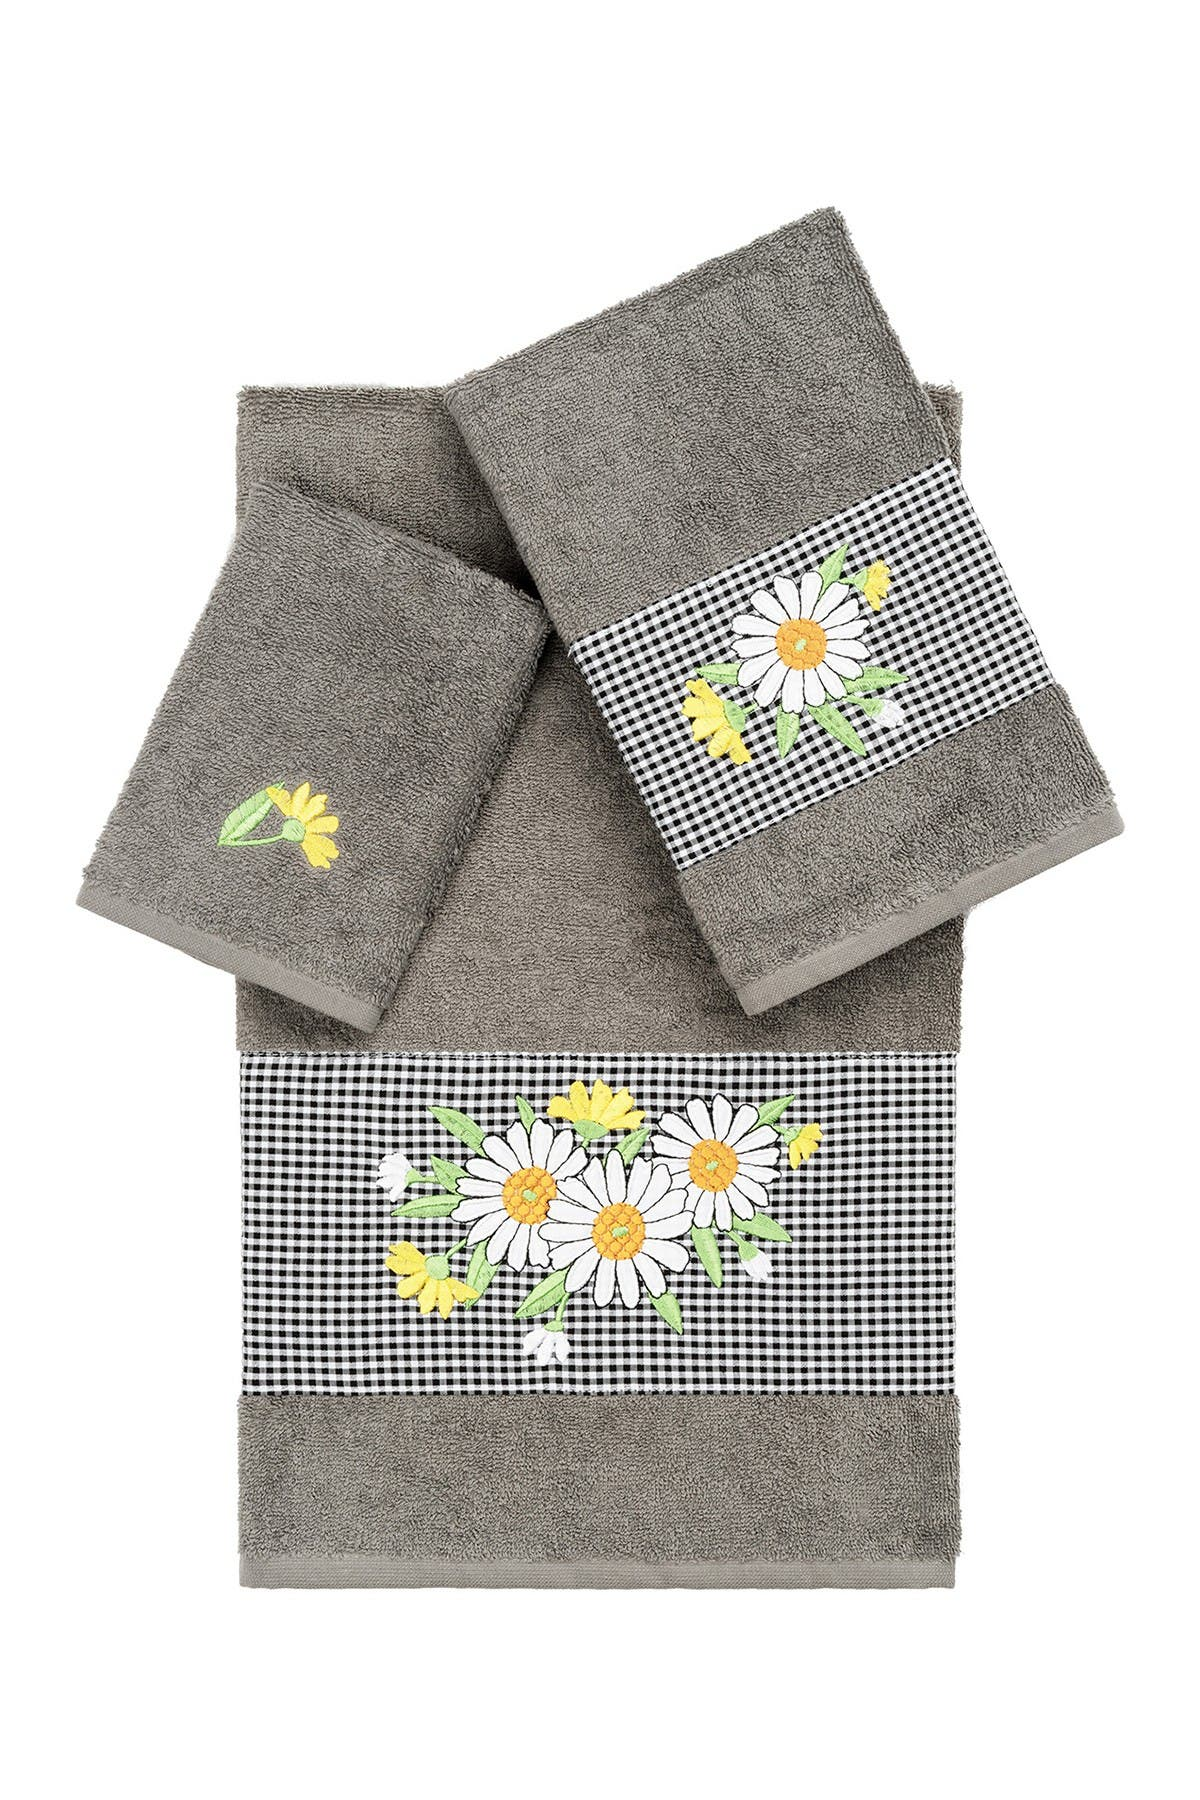 Image of LINUM HOME Daisy 3-Piece Embellished Towel - Dark Gray